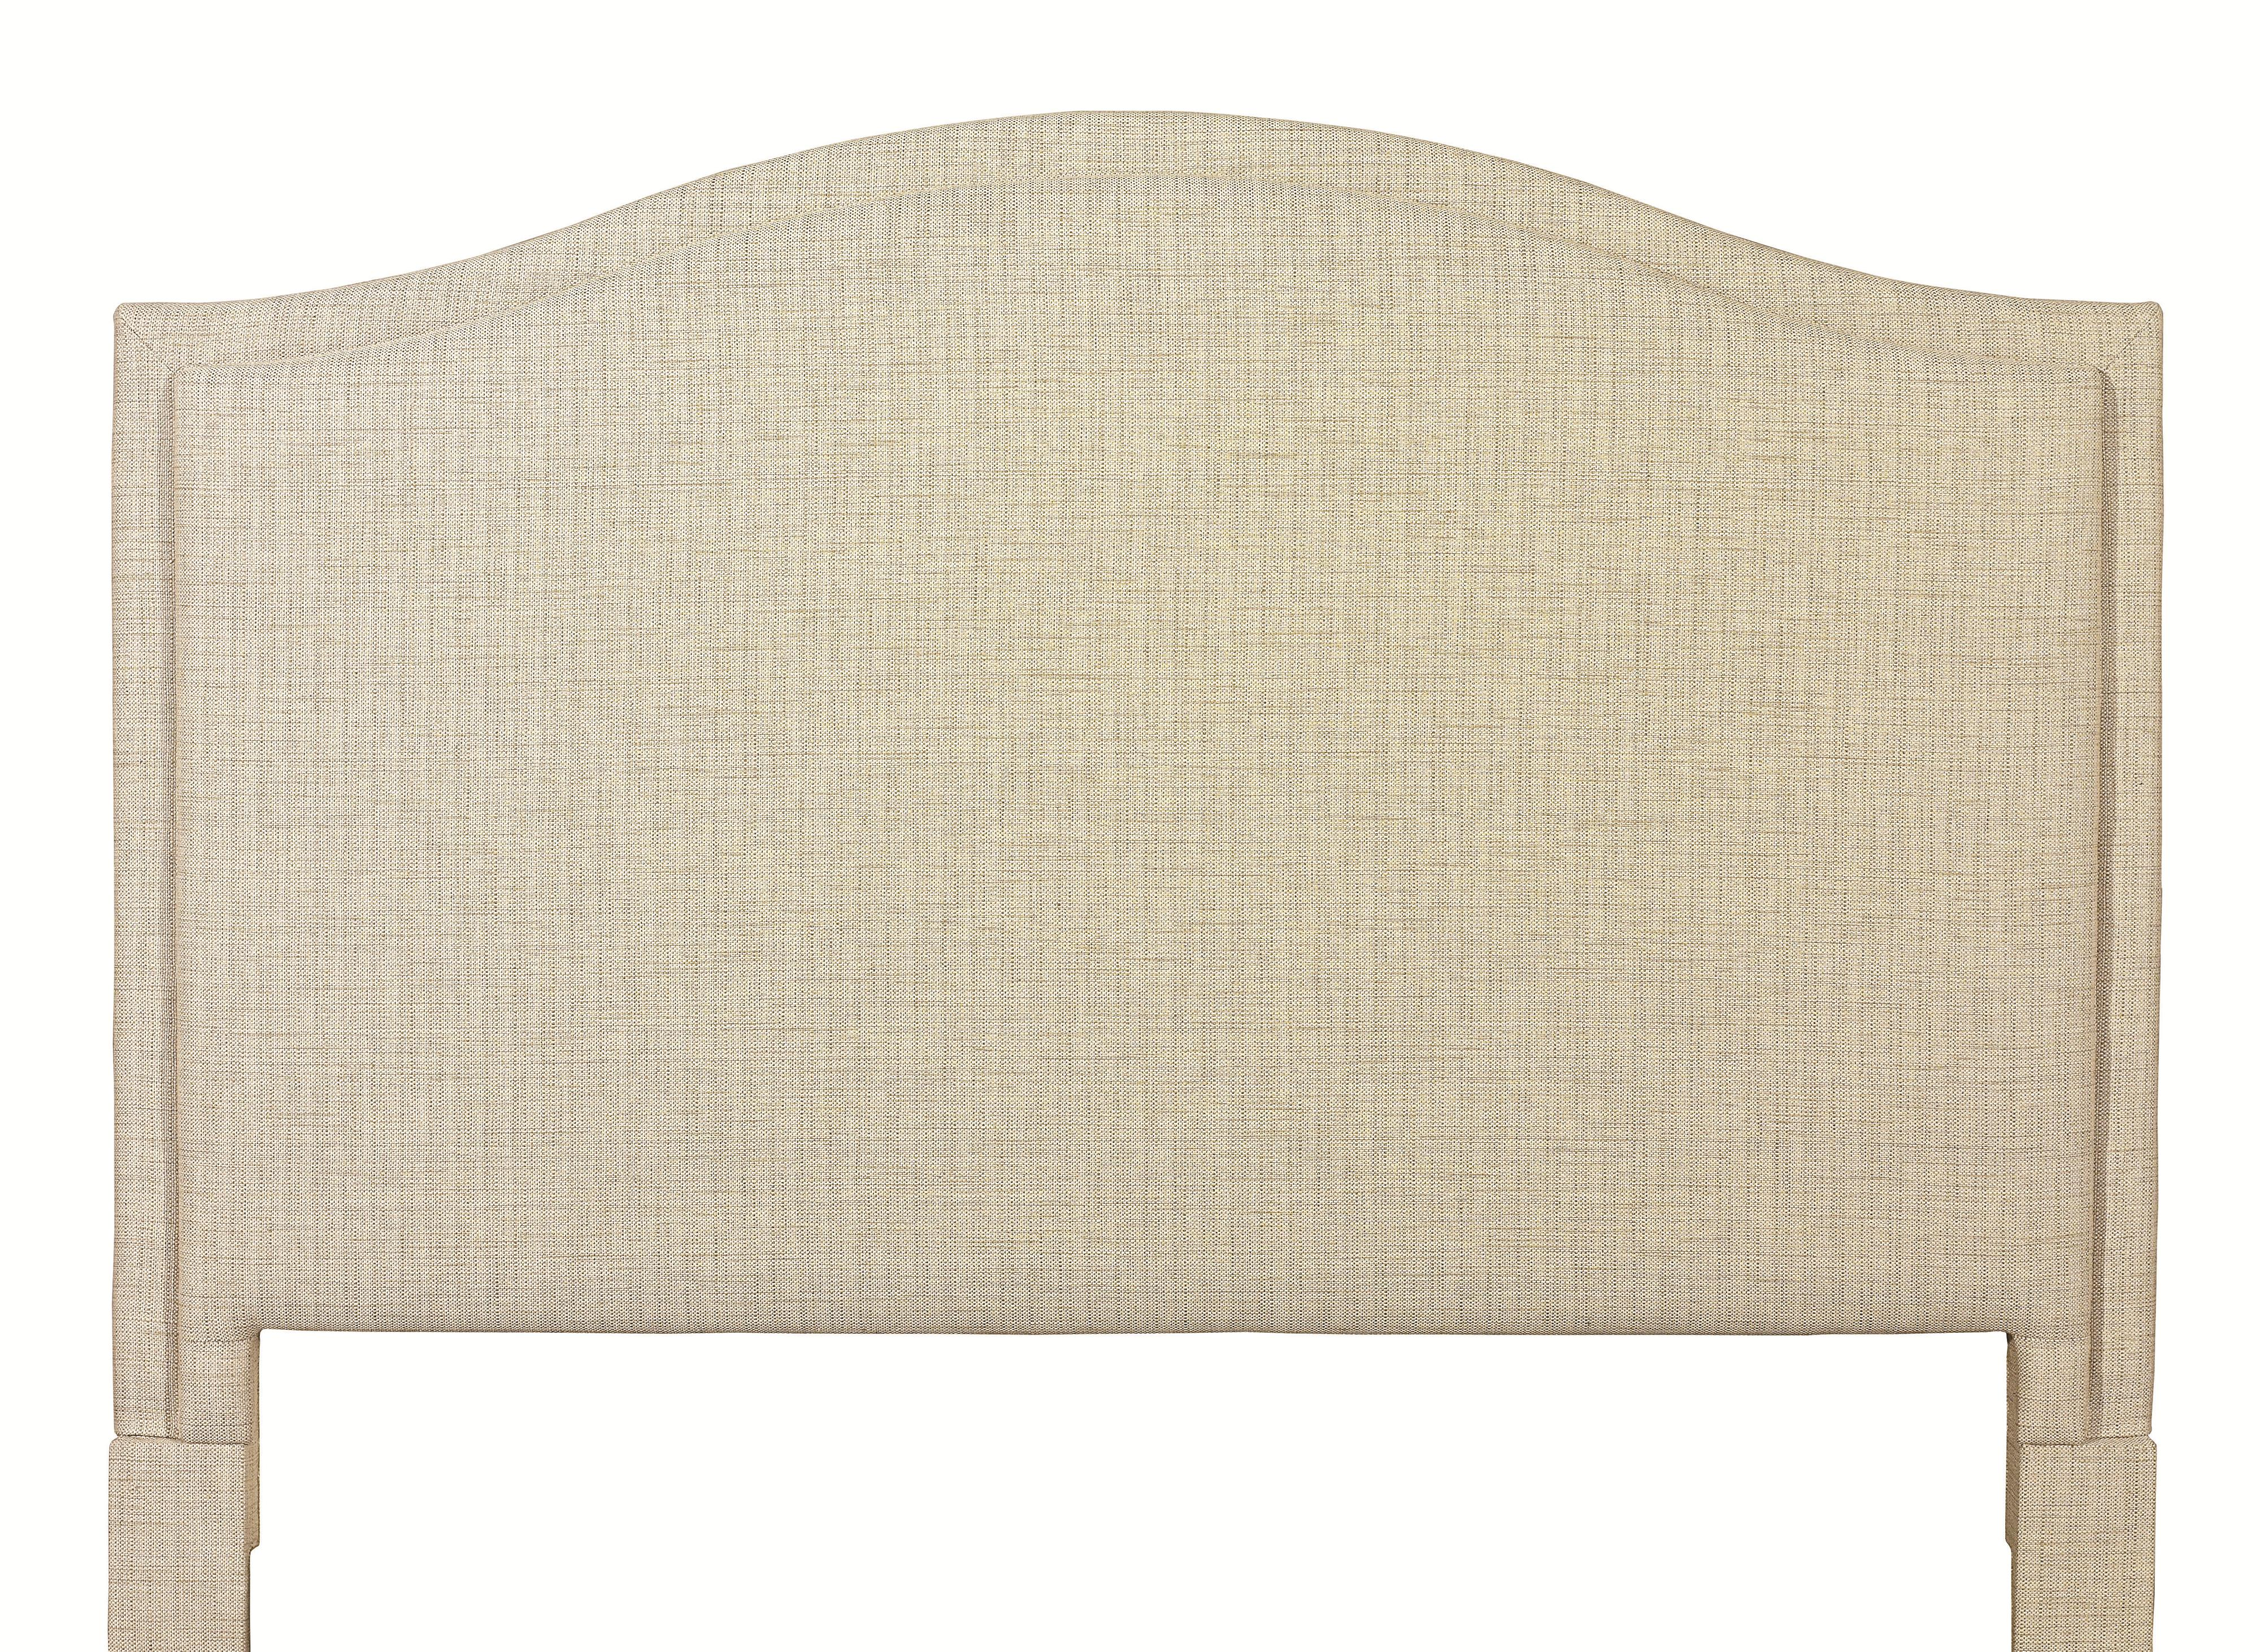 Bassett Custom Upholstered Beds California King Vienna Upholstered Headboard - Item Number: 1993-H79F